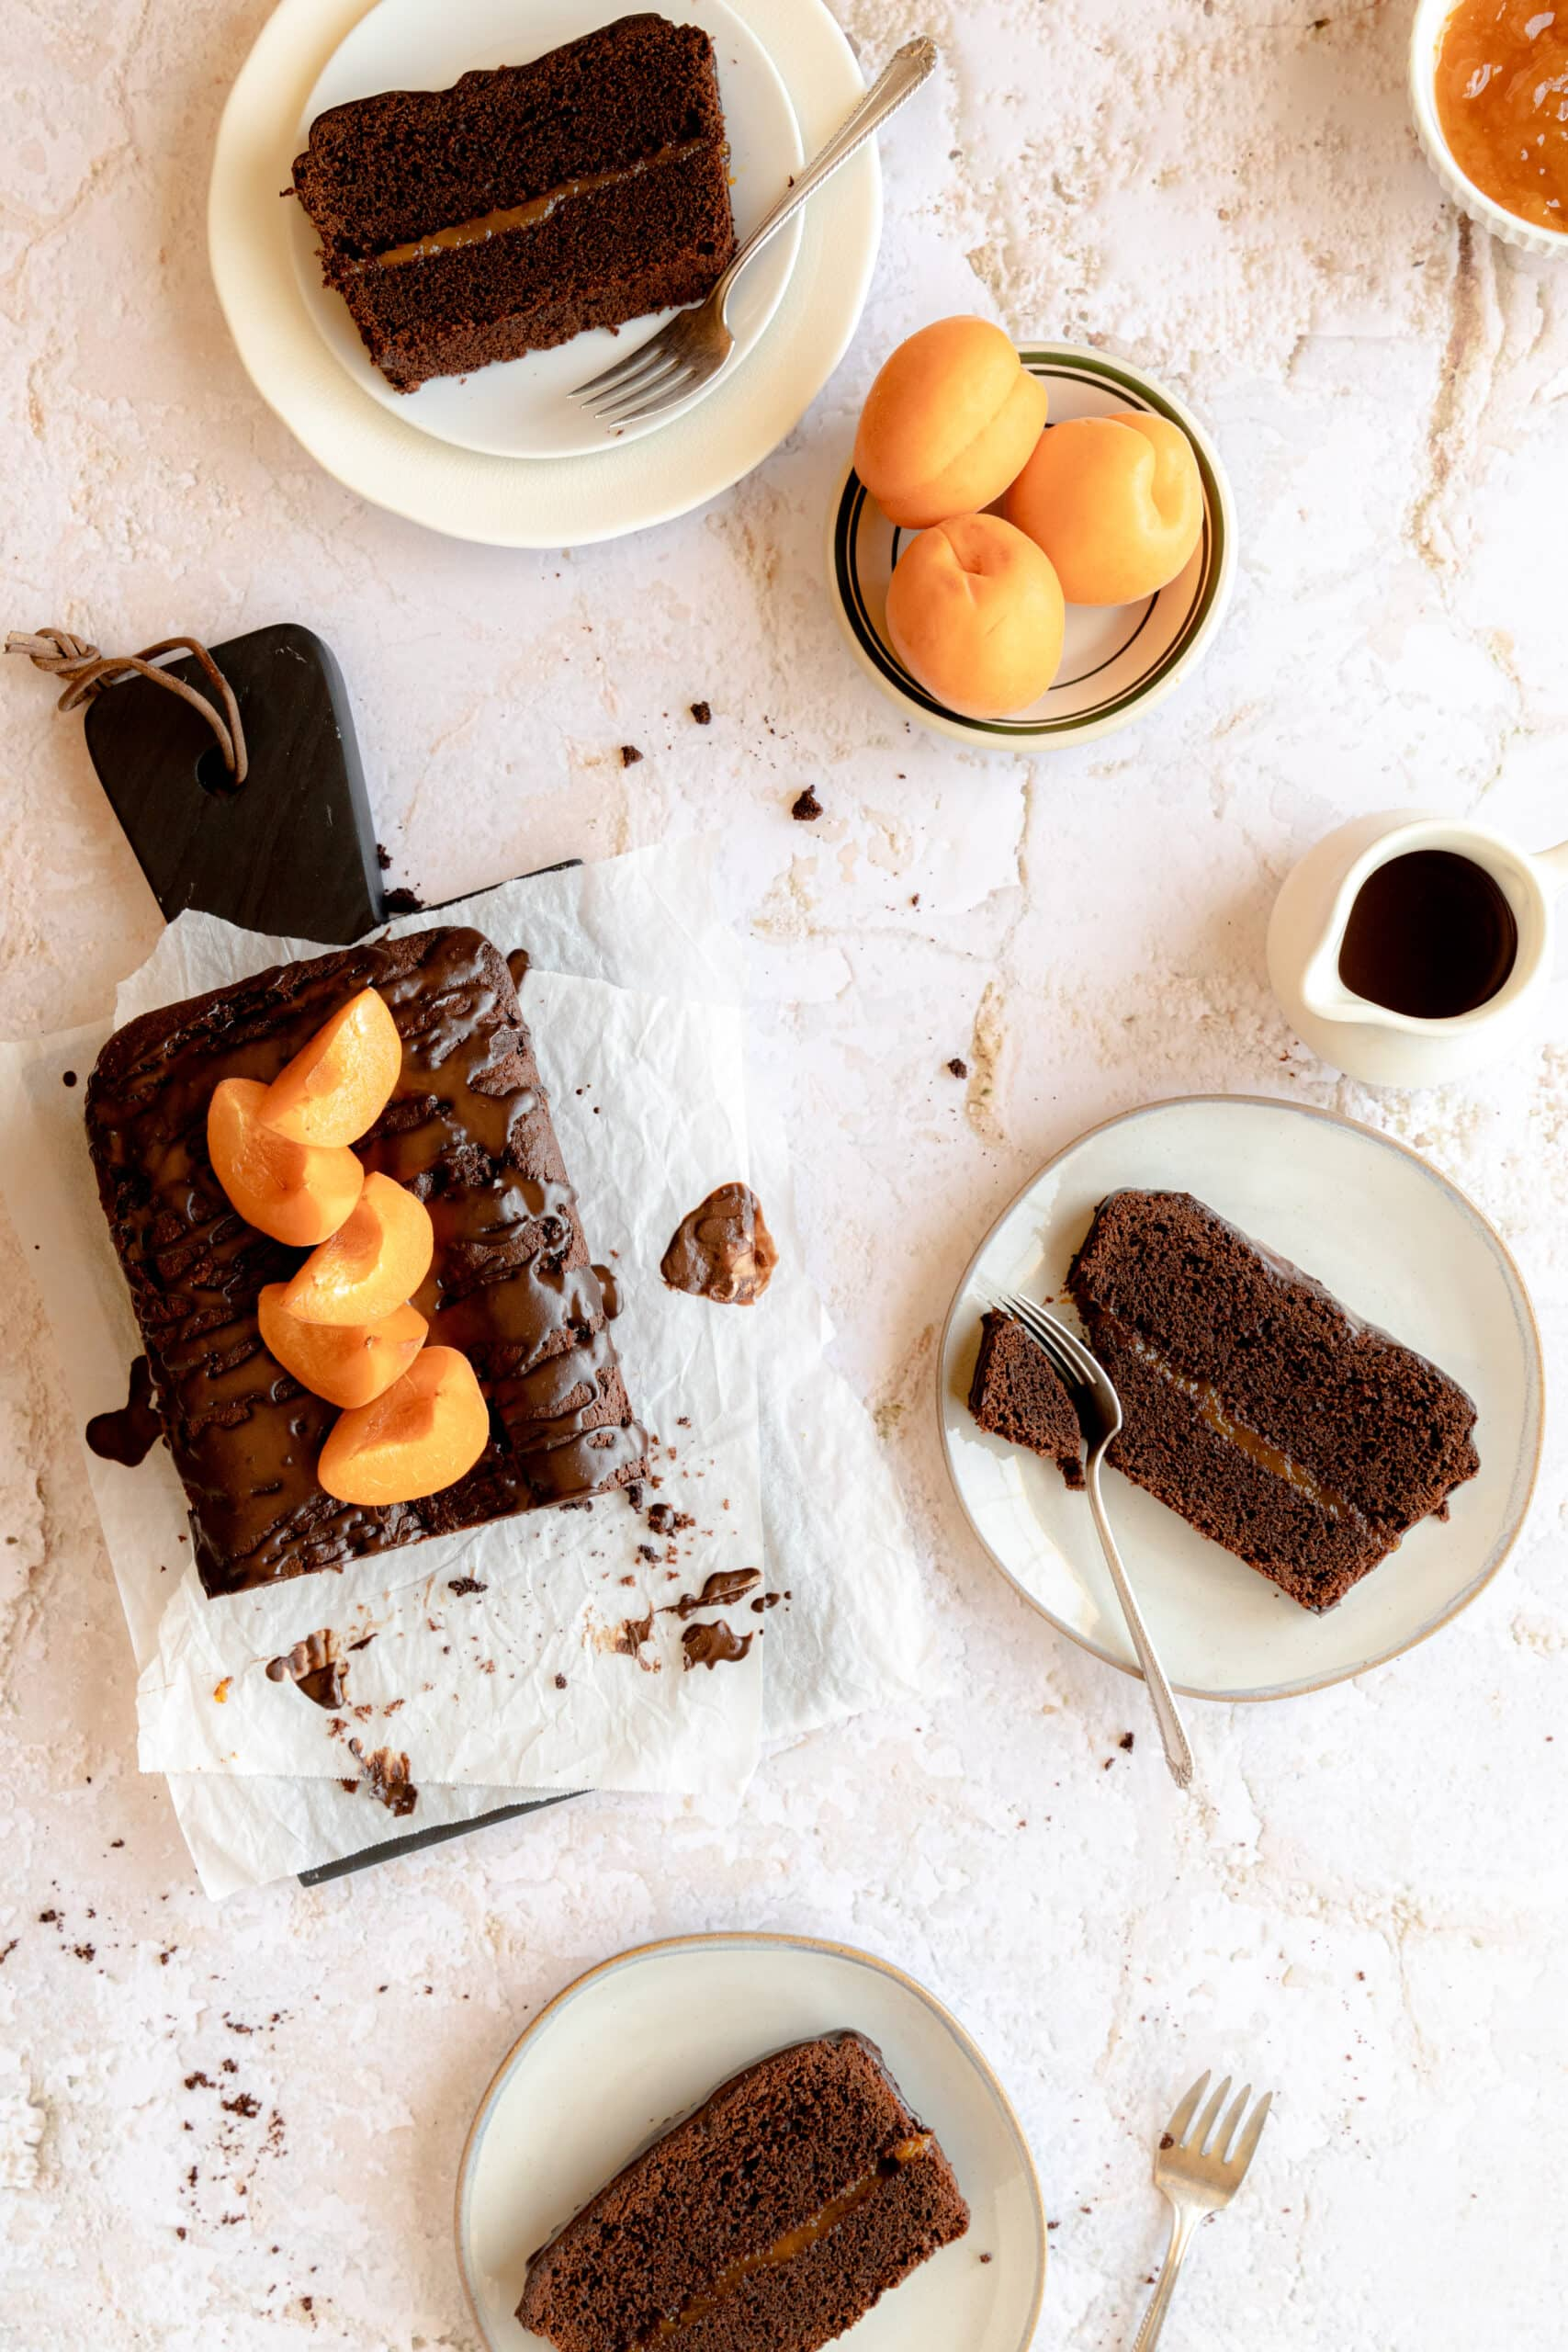 Image of Sachertorte Loaf cut into with three slices on three different white plates and crumbs strewn about.